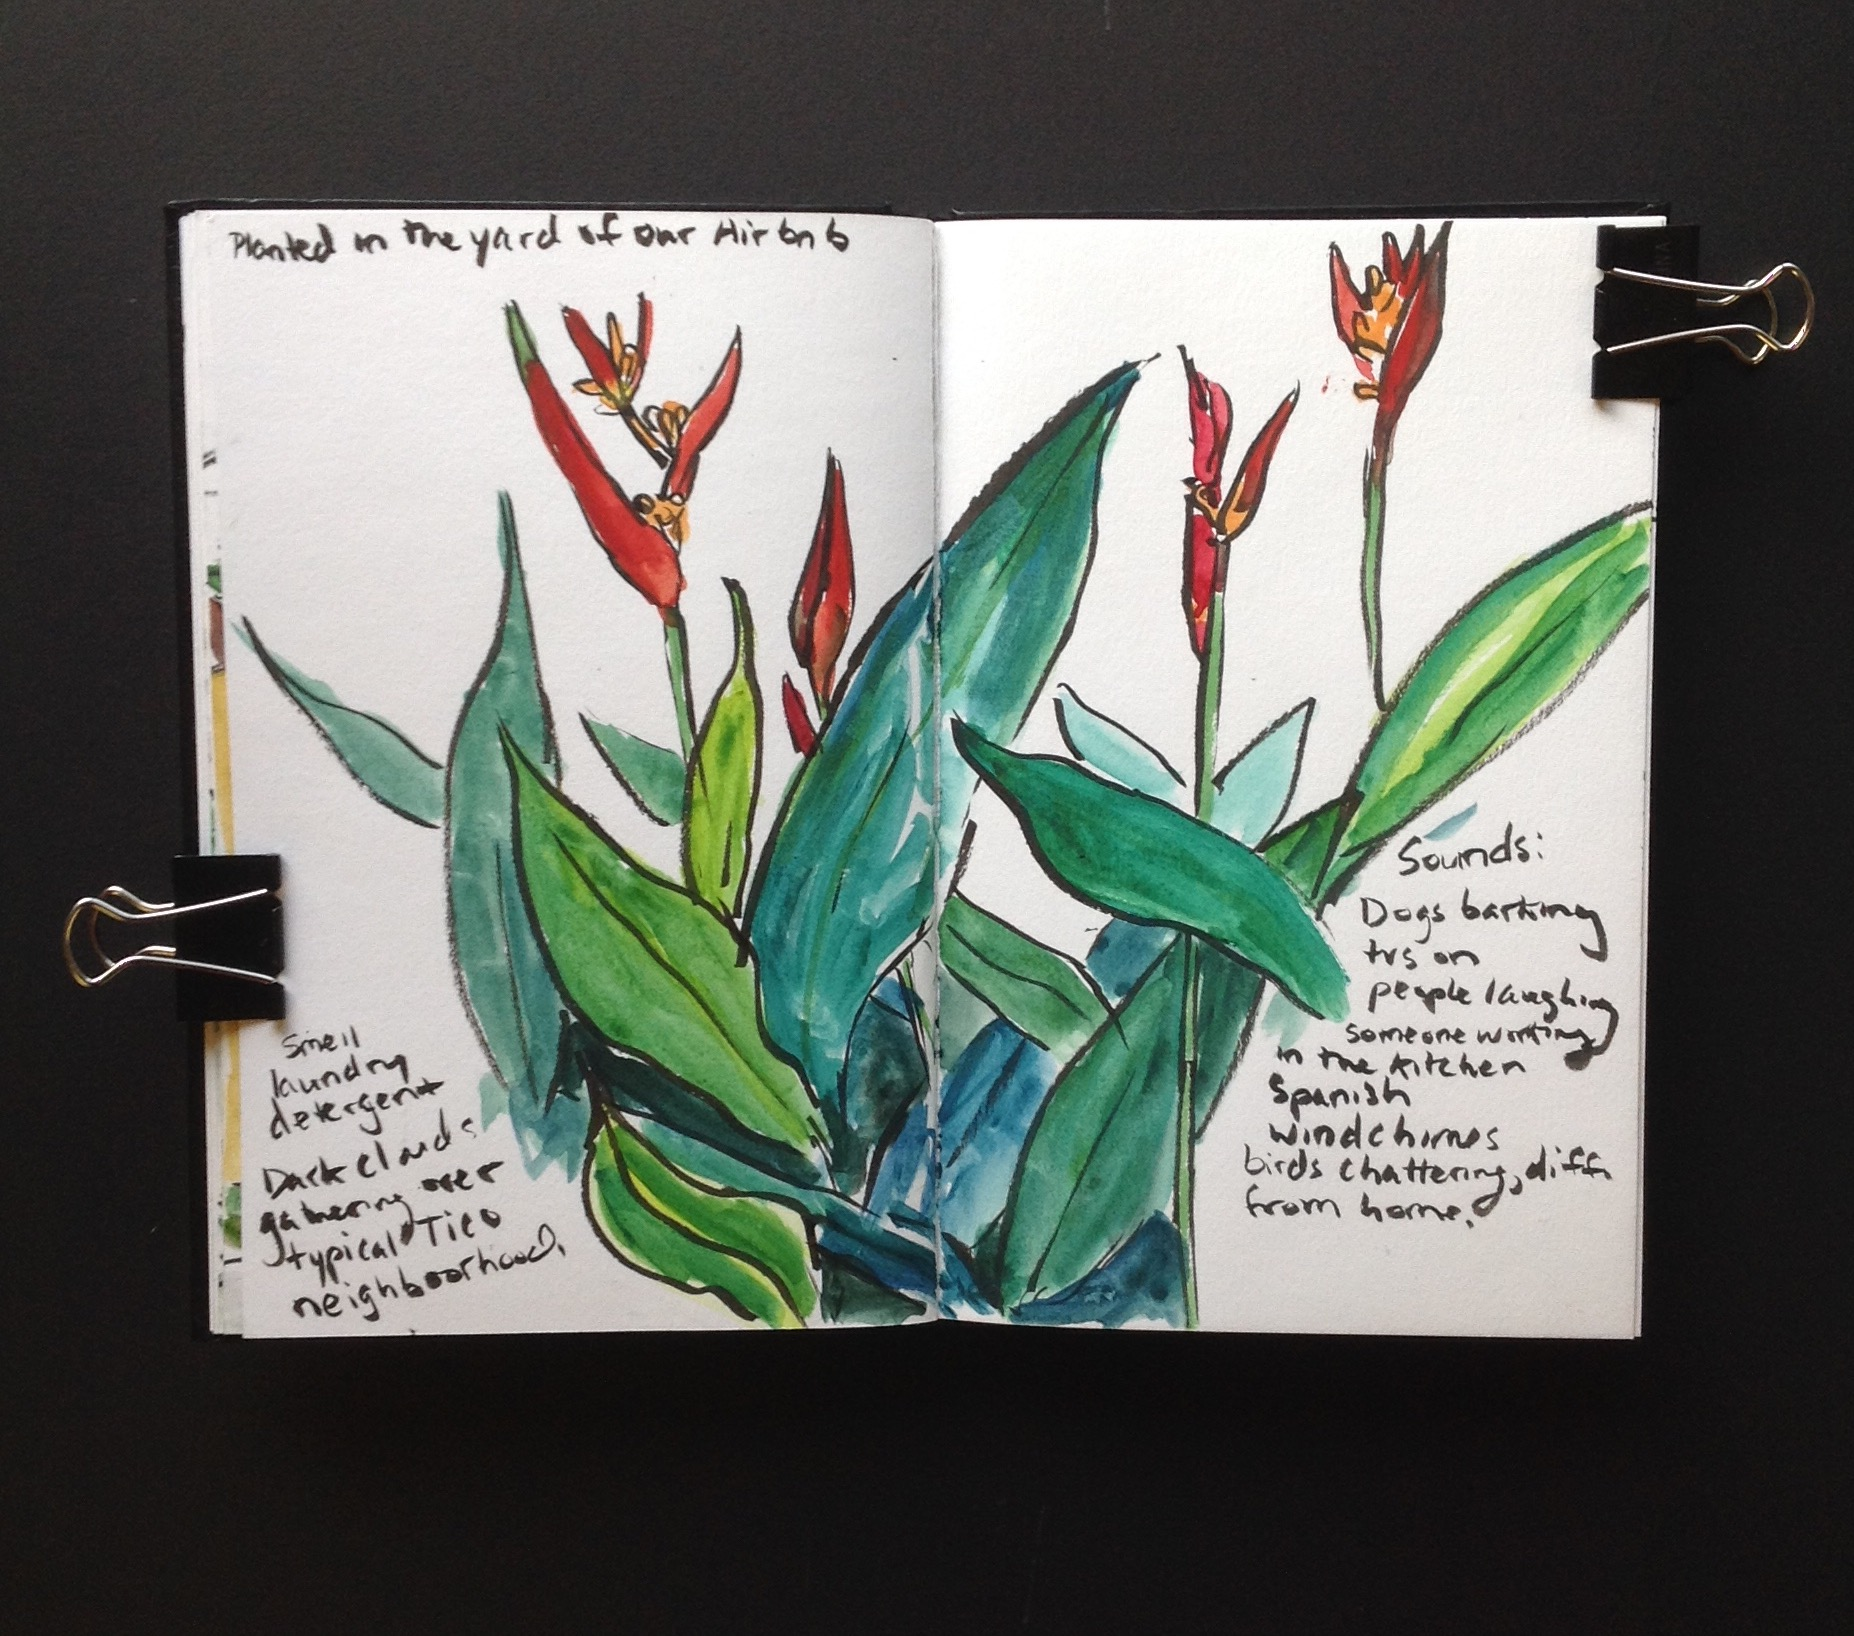 Relatives of Birds of Paradise Flowers planted in the Airbnb yard.